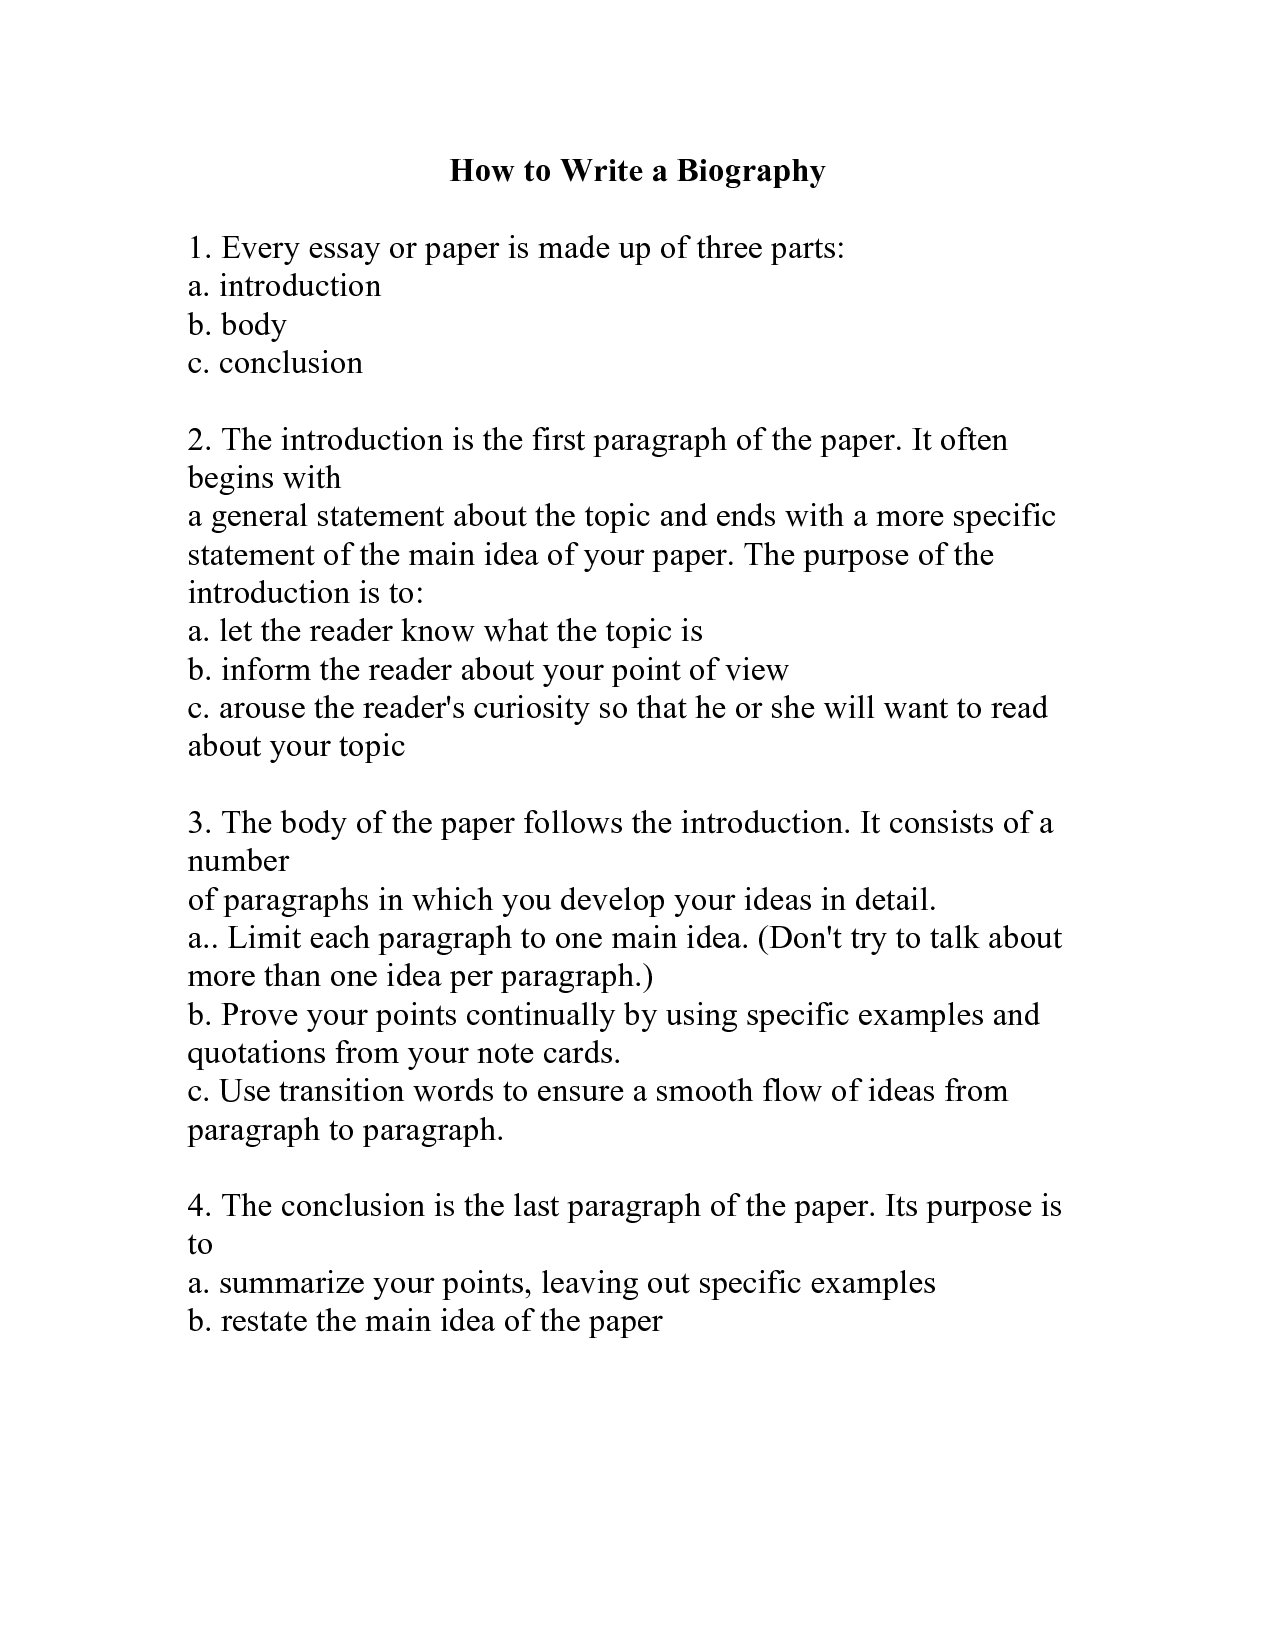 008 How To Write Biography 88169 Short Essay Surprising A Response Answer Question In Apa Format Full